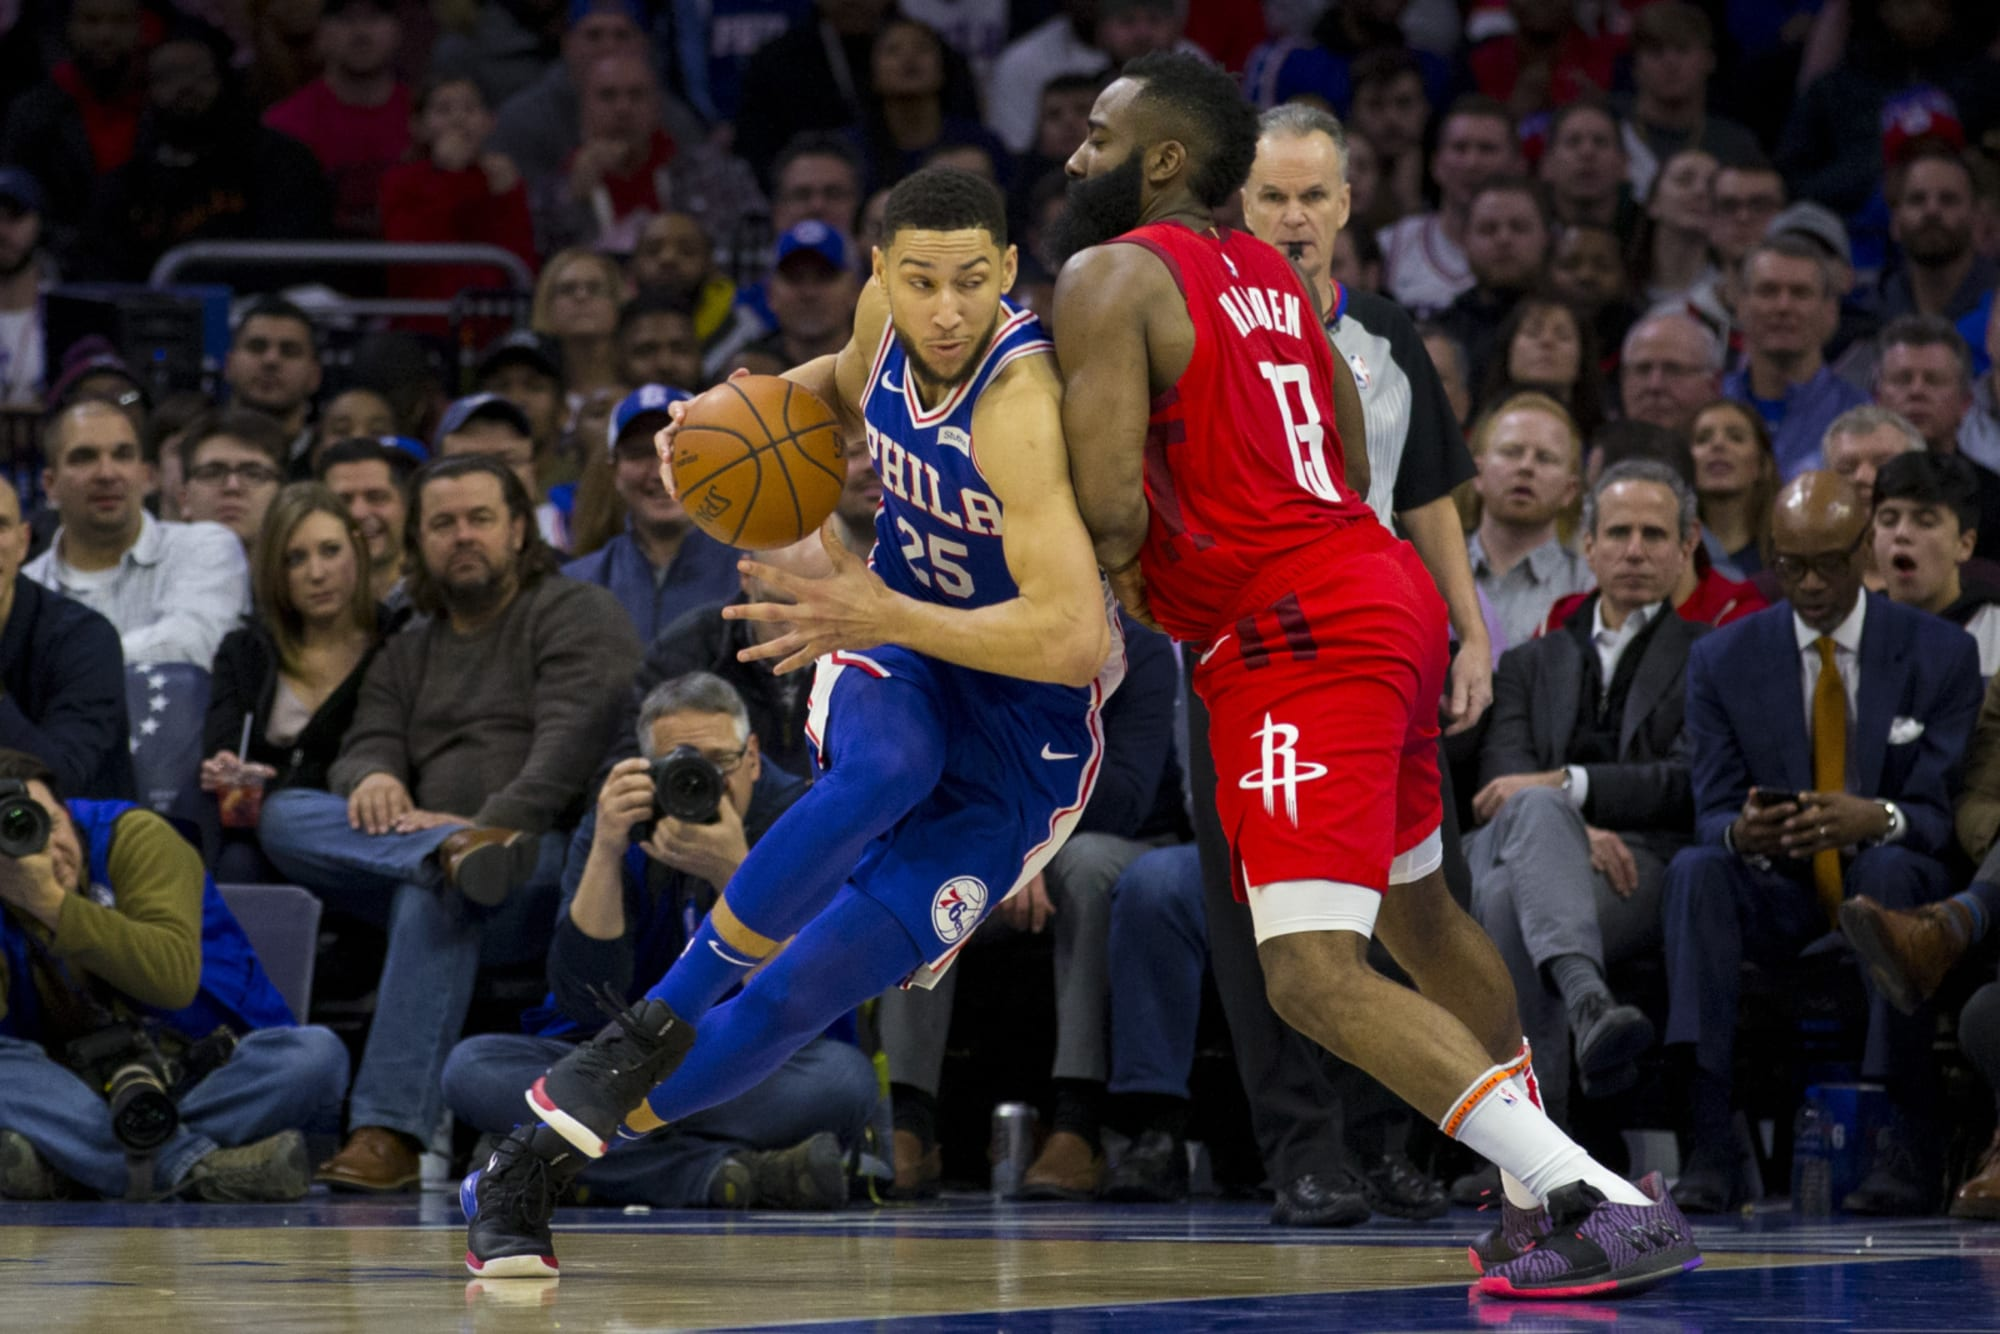 The 4 most scrutinized players in the NBA right now